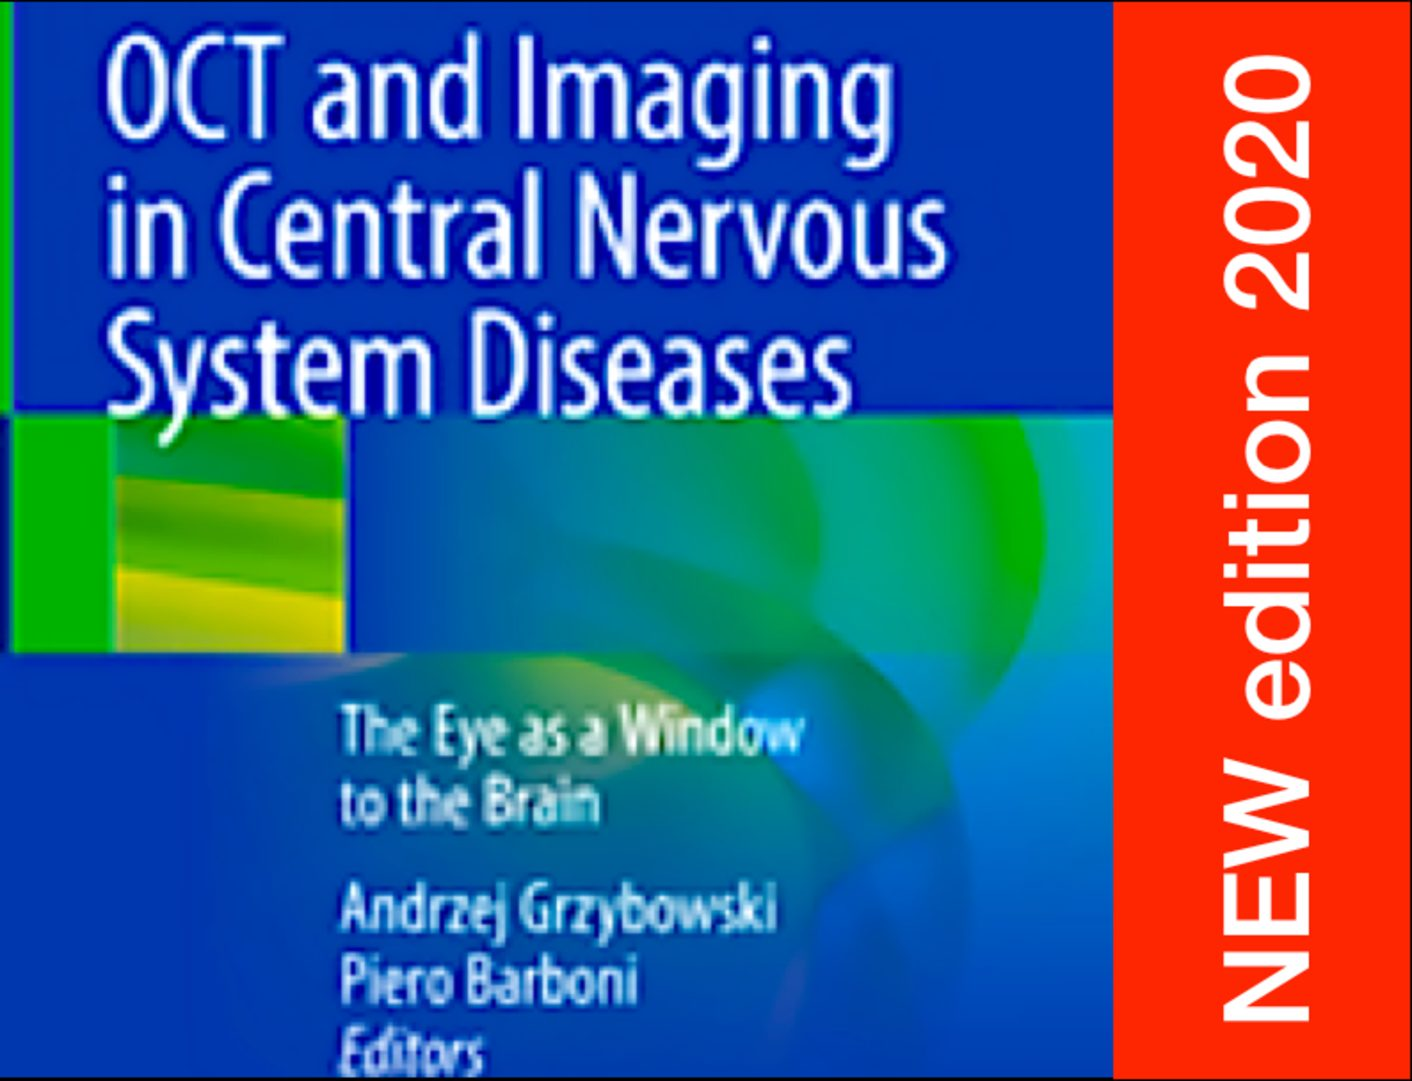 OCT in central nervous system diseases